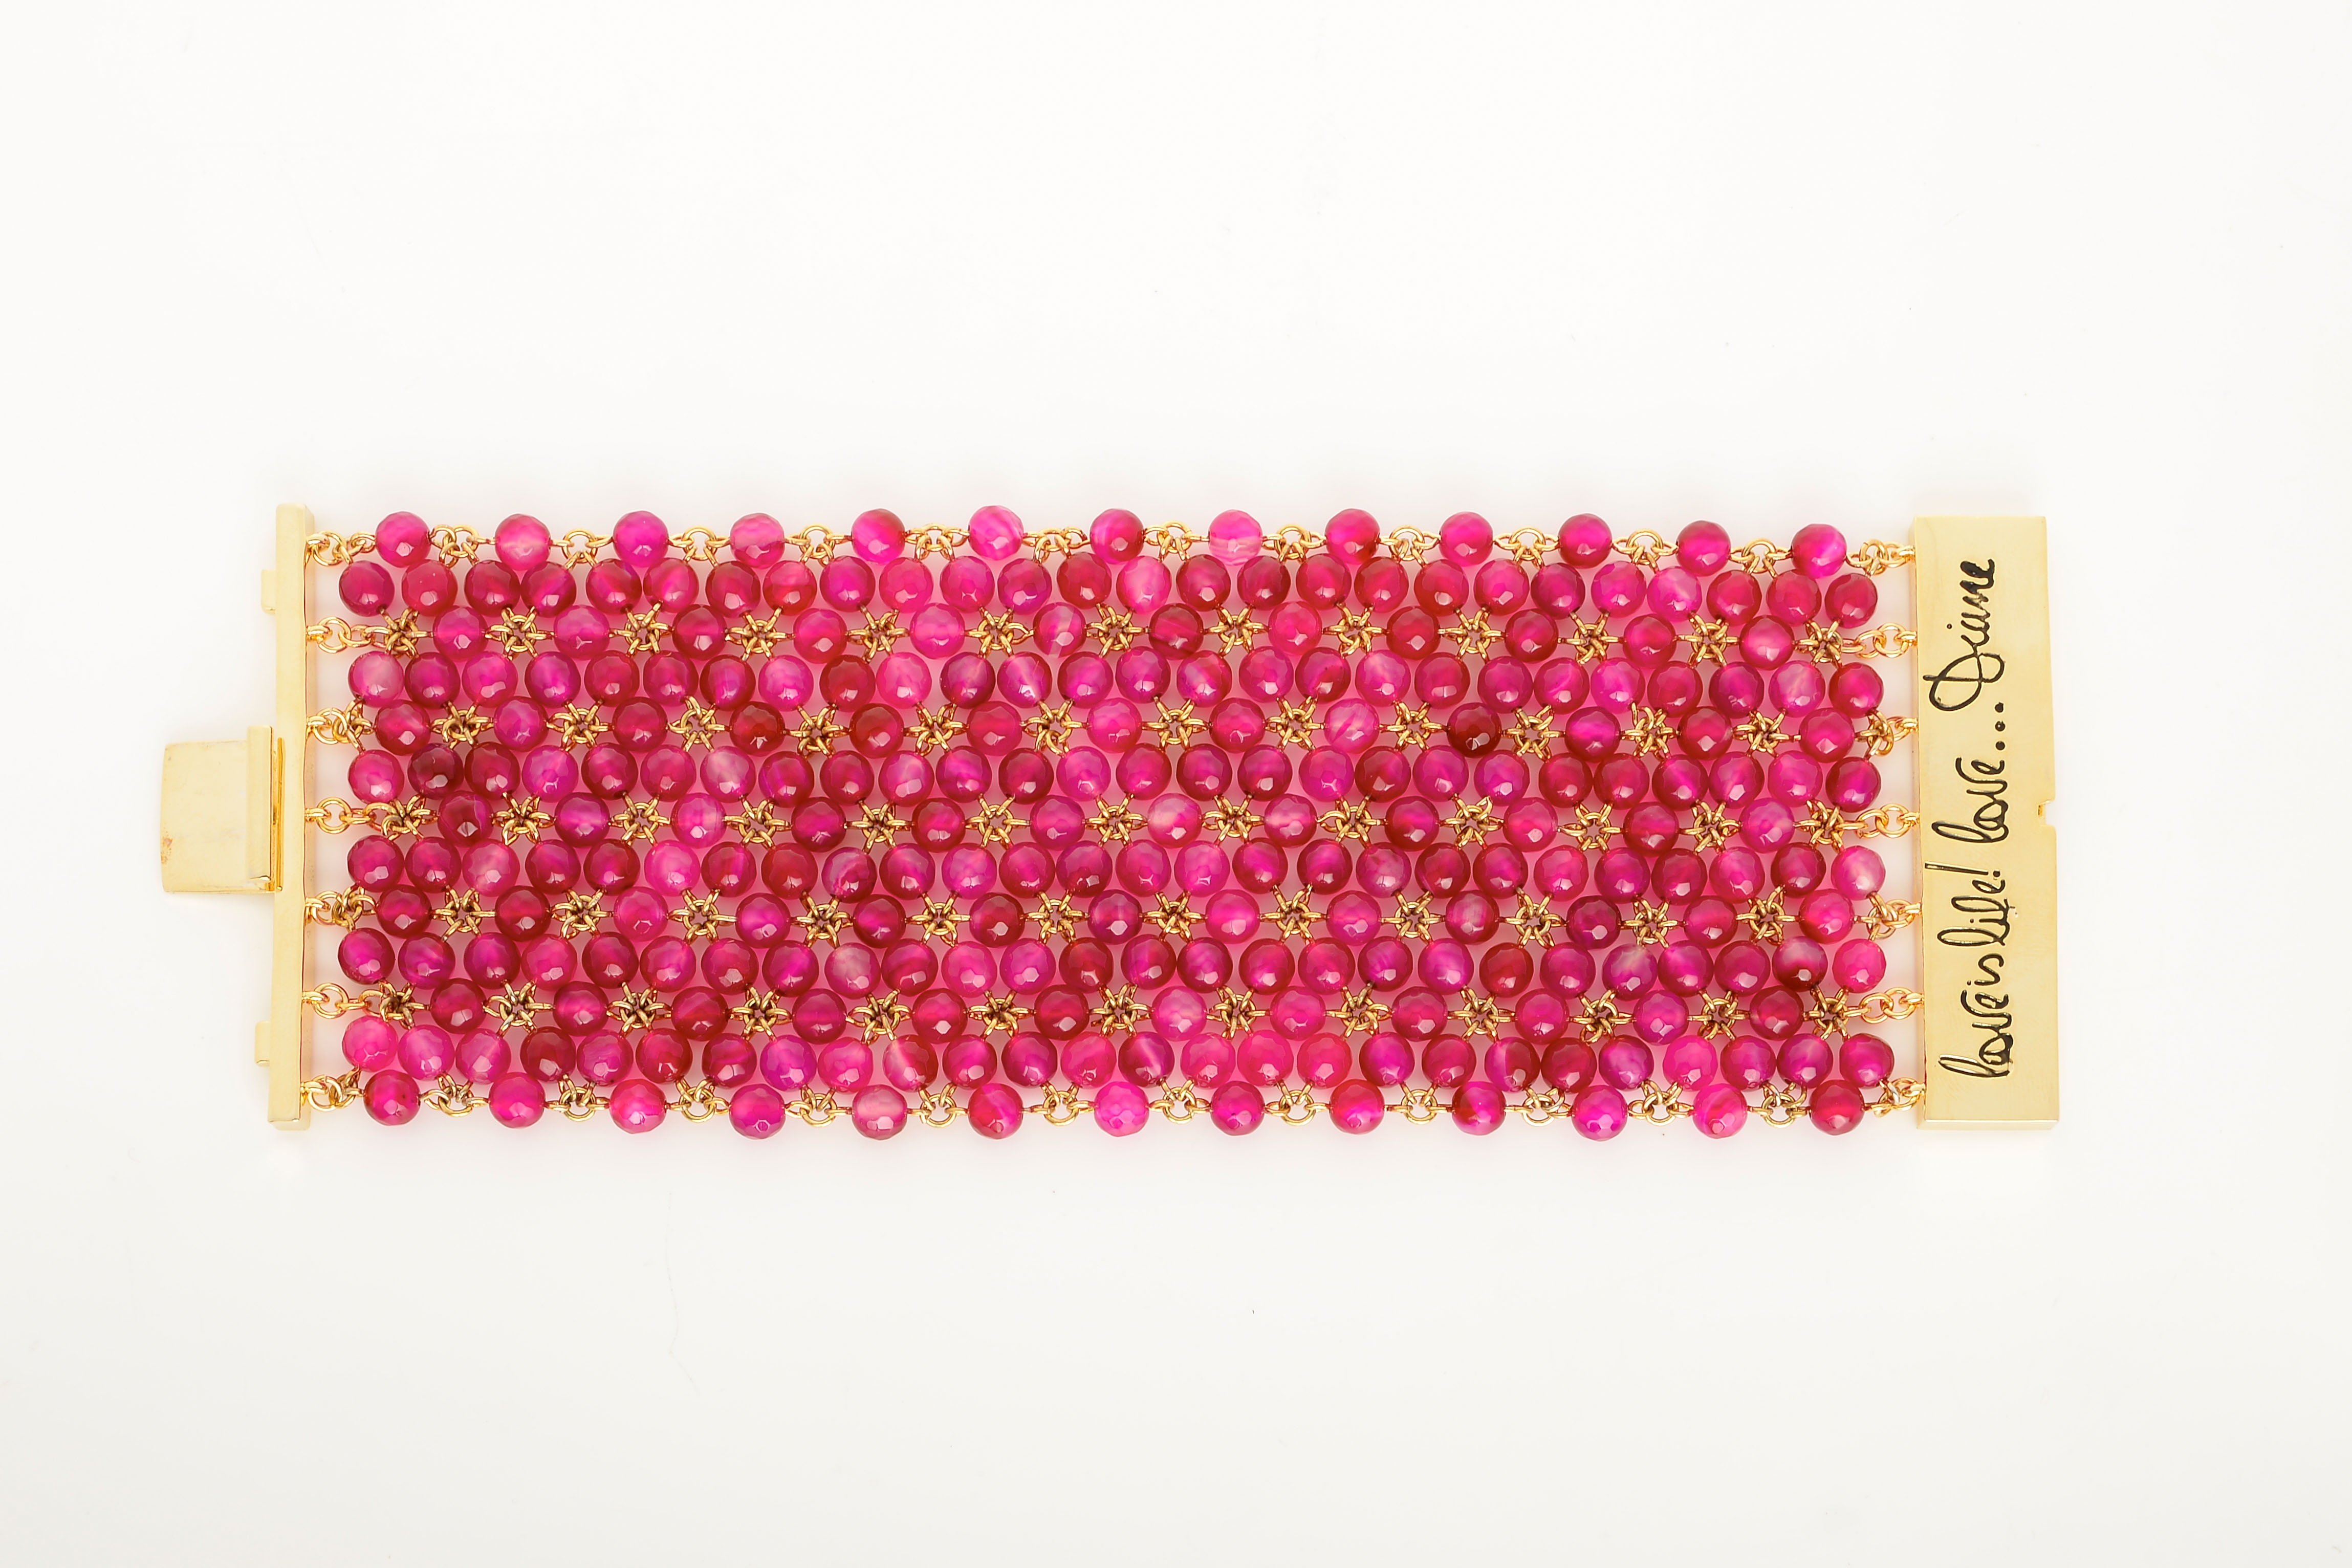 DVF- Honey Bracelet in Beet